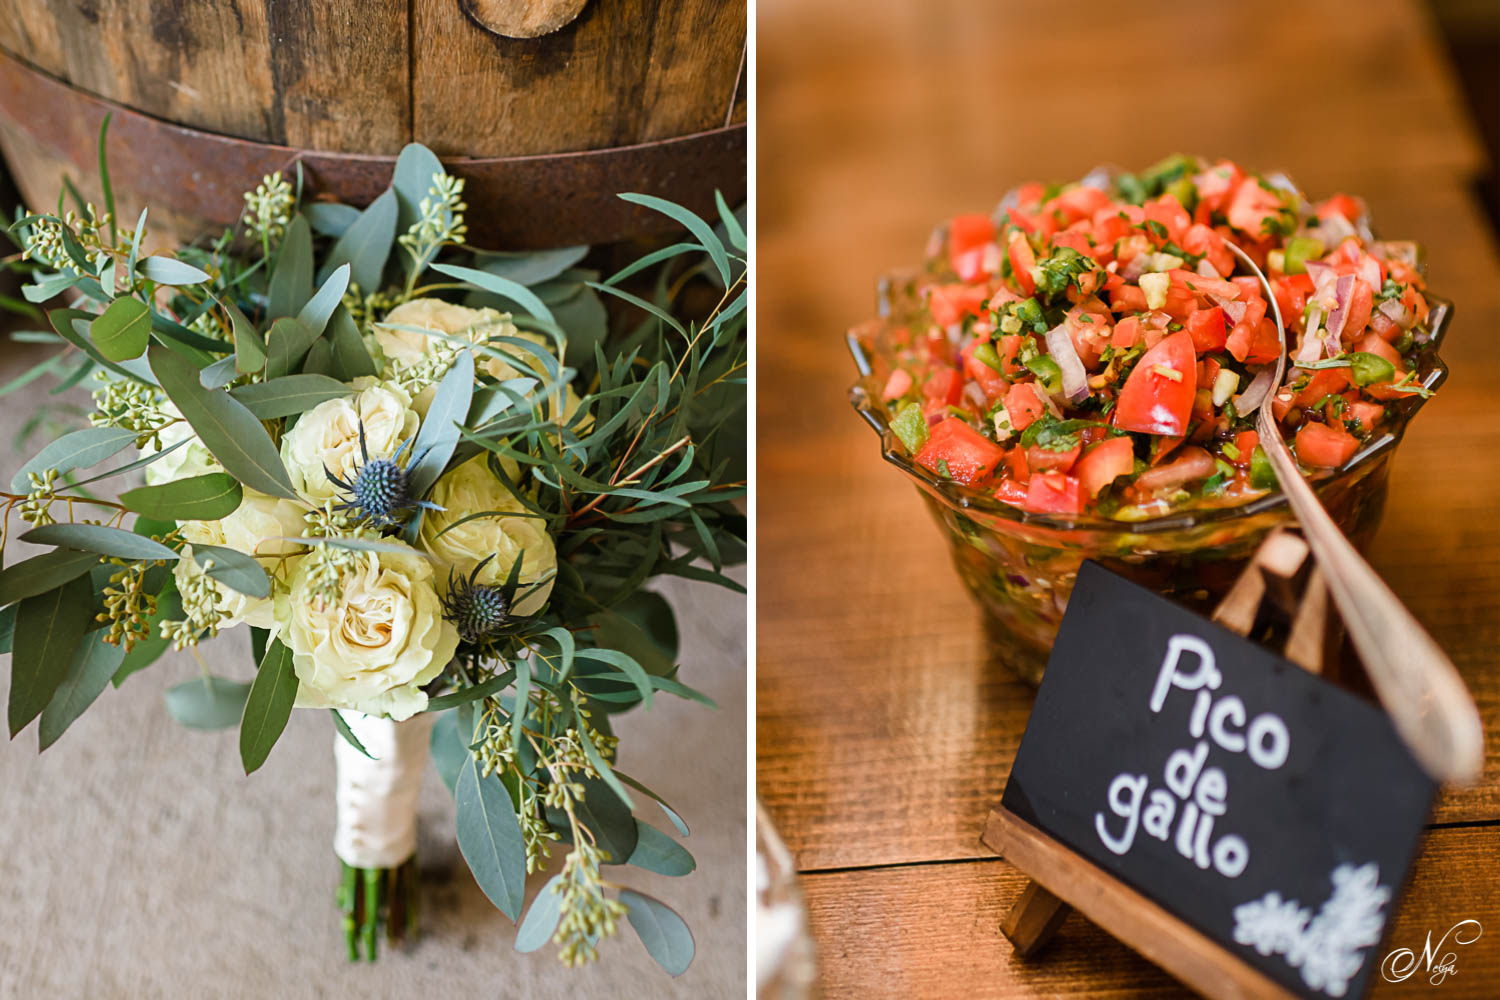 bride's bouquet leaning against a whisky barrel. And Fresh salsa